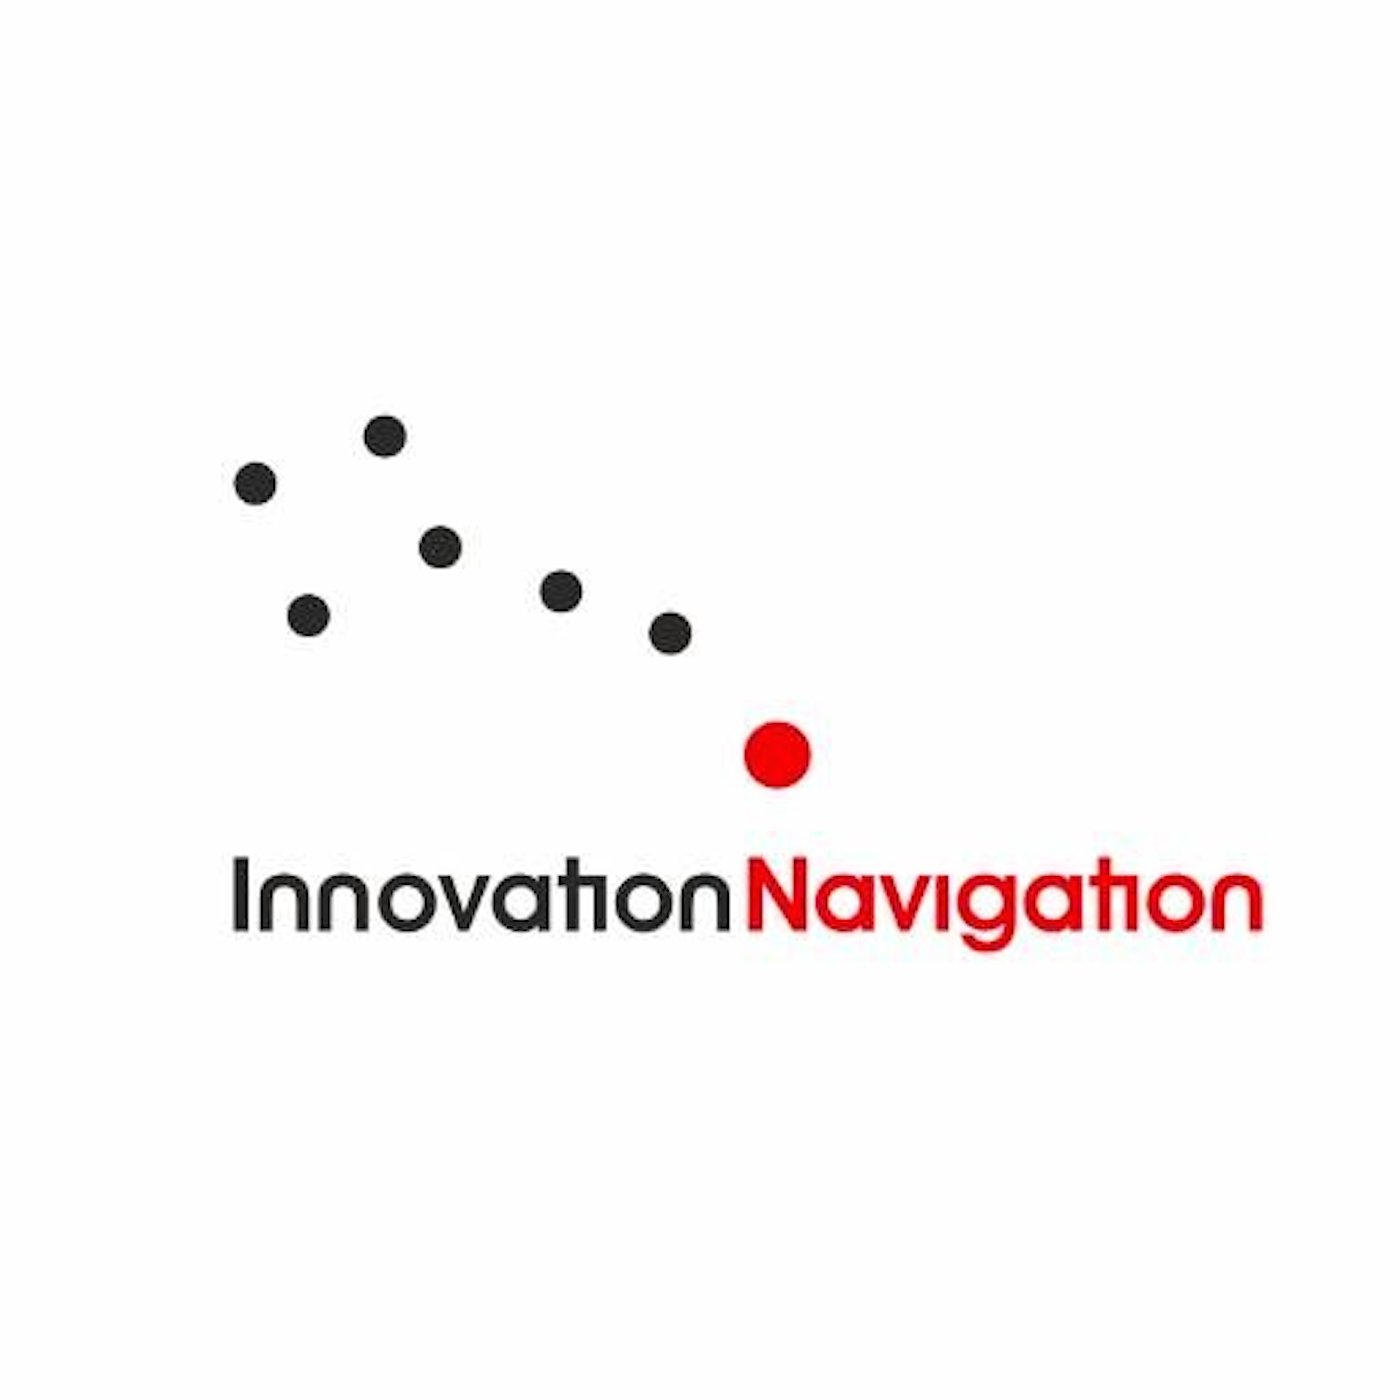 Episode 15 - Innovation Navigation at the Detroit Auto Show